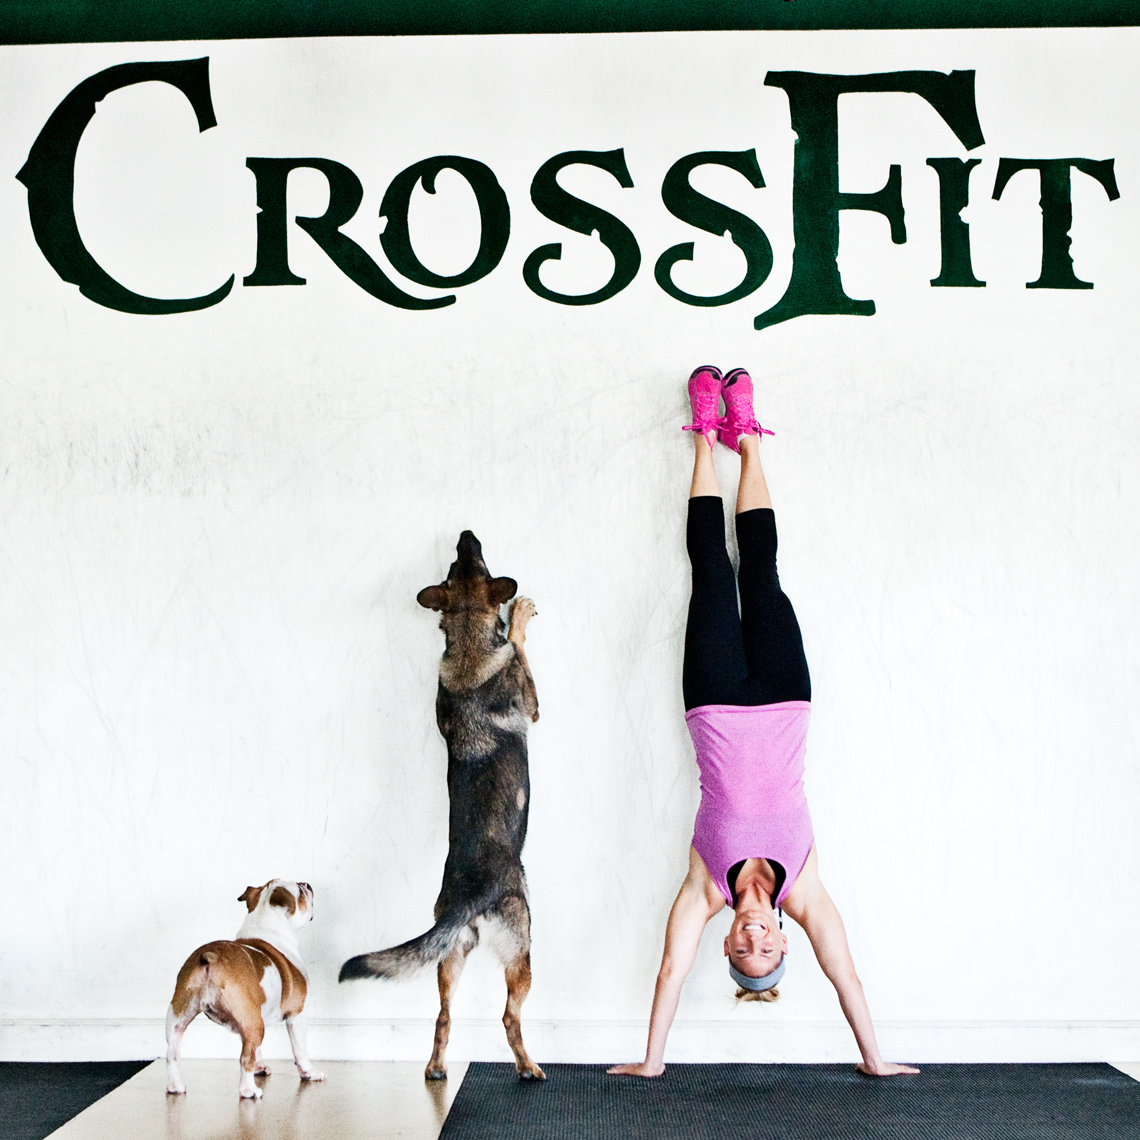 Crossfit, LA Dog Photography, Michael Brian, Los Angeles, Sports, Elizabeth Burns handstand with a German Shepherd and Bulldog, Dogtown Crossfit